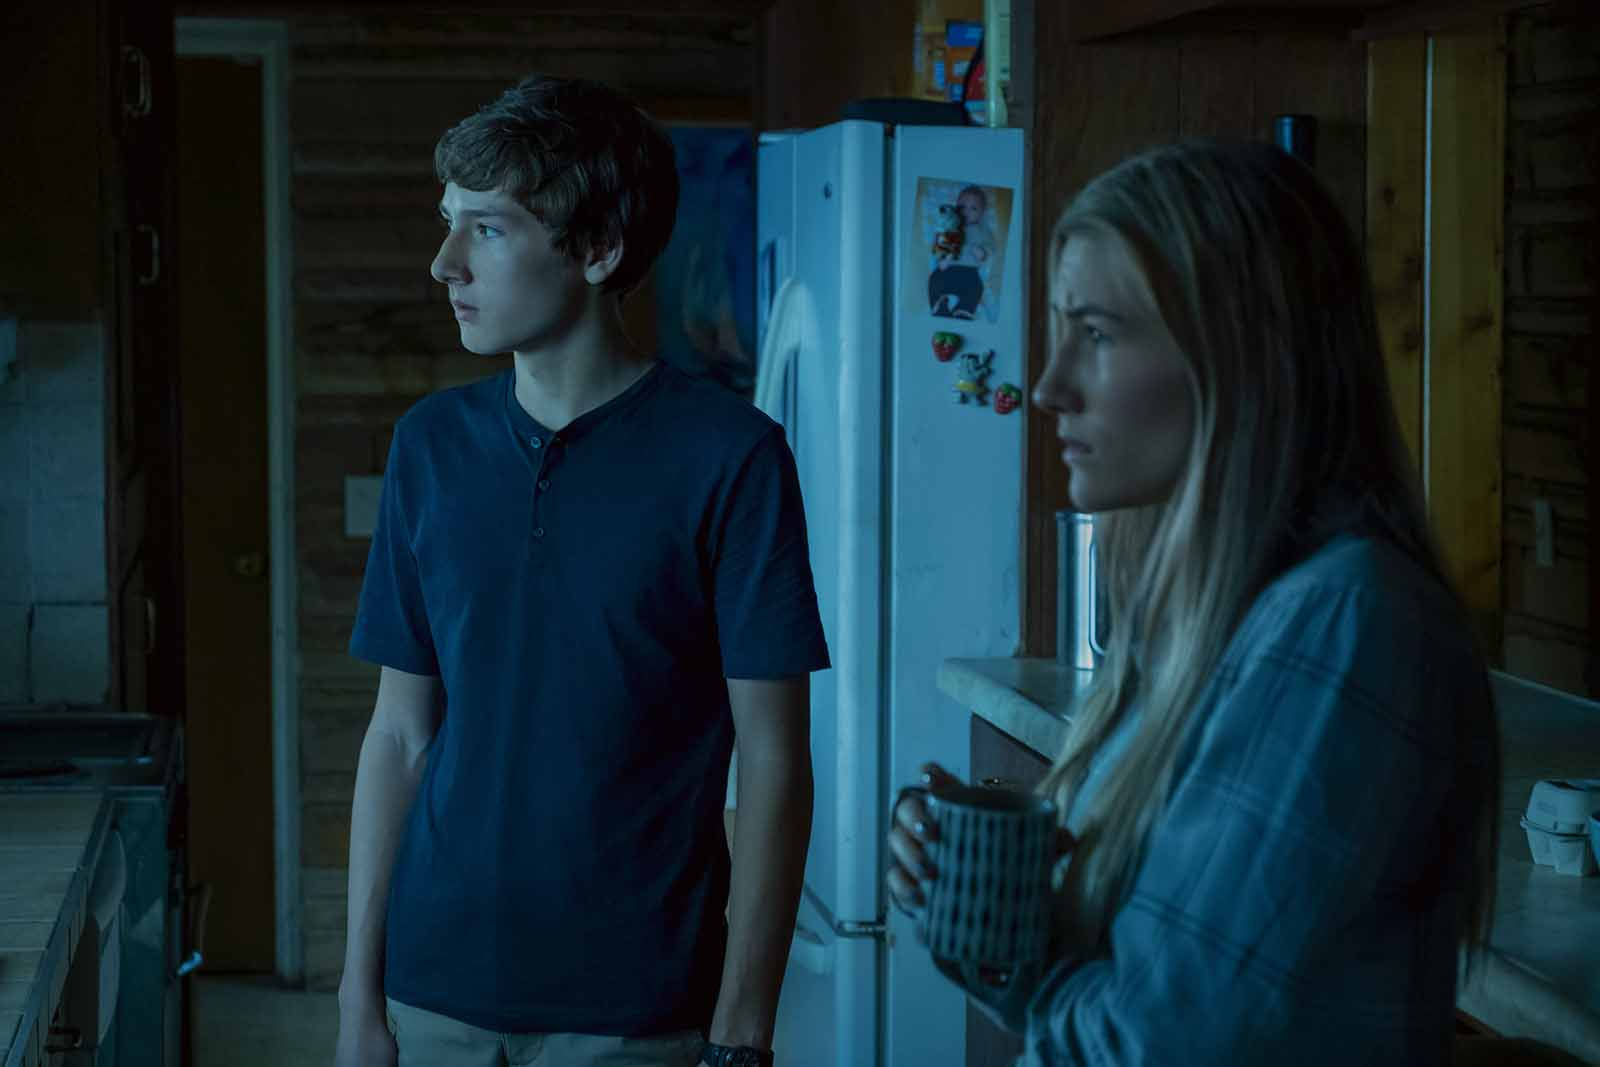 Netflix is finally cancelling 'Ozark' after 4 seasons, but it's still far too many seasons of this show. Netflix should've cut 'Ozark' after season 1.